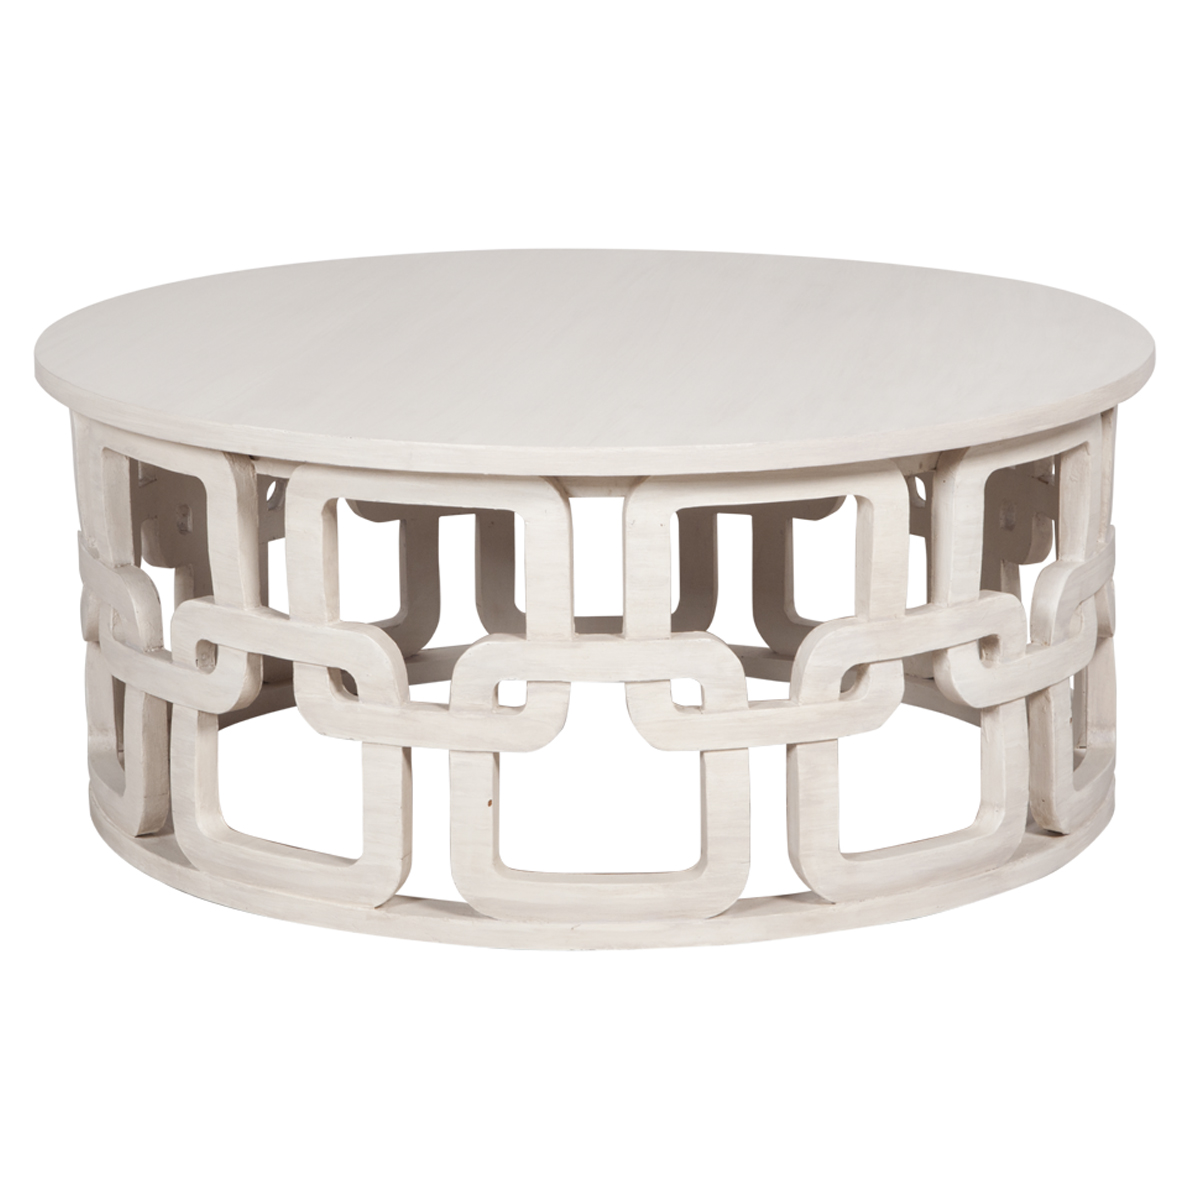 Round White Coffee Table White Coffee Tables Small Coffee Tables Round White Coffee Tables (Image 5 of 10)